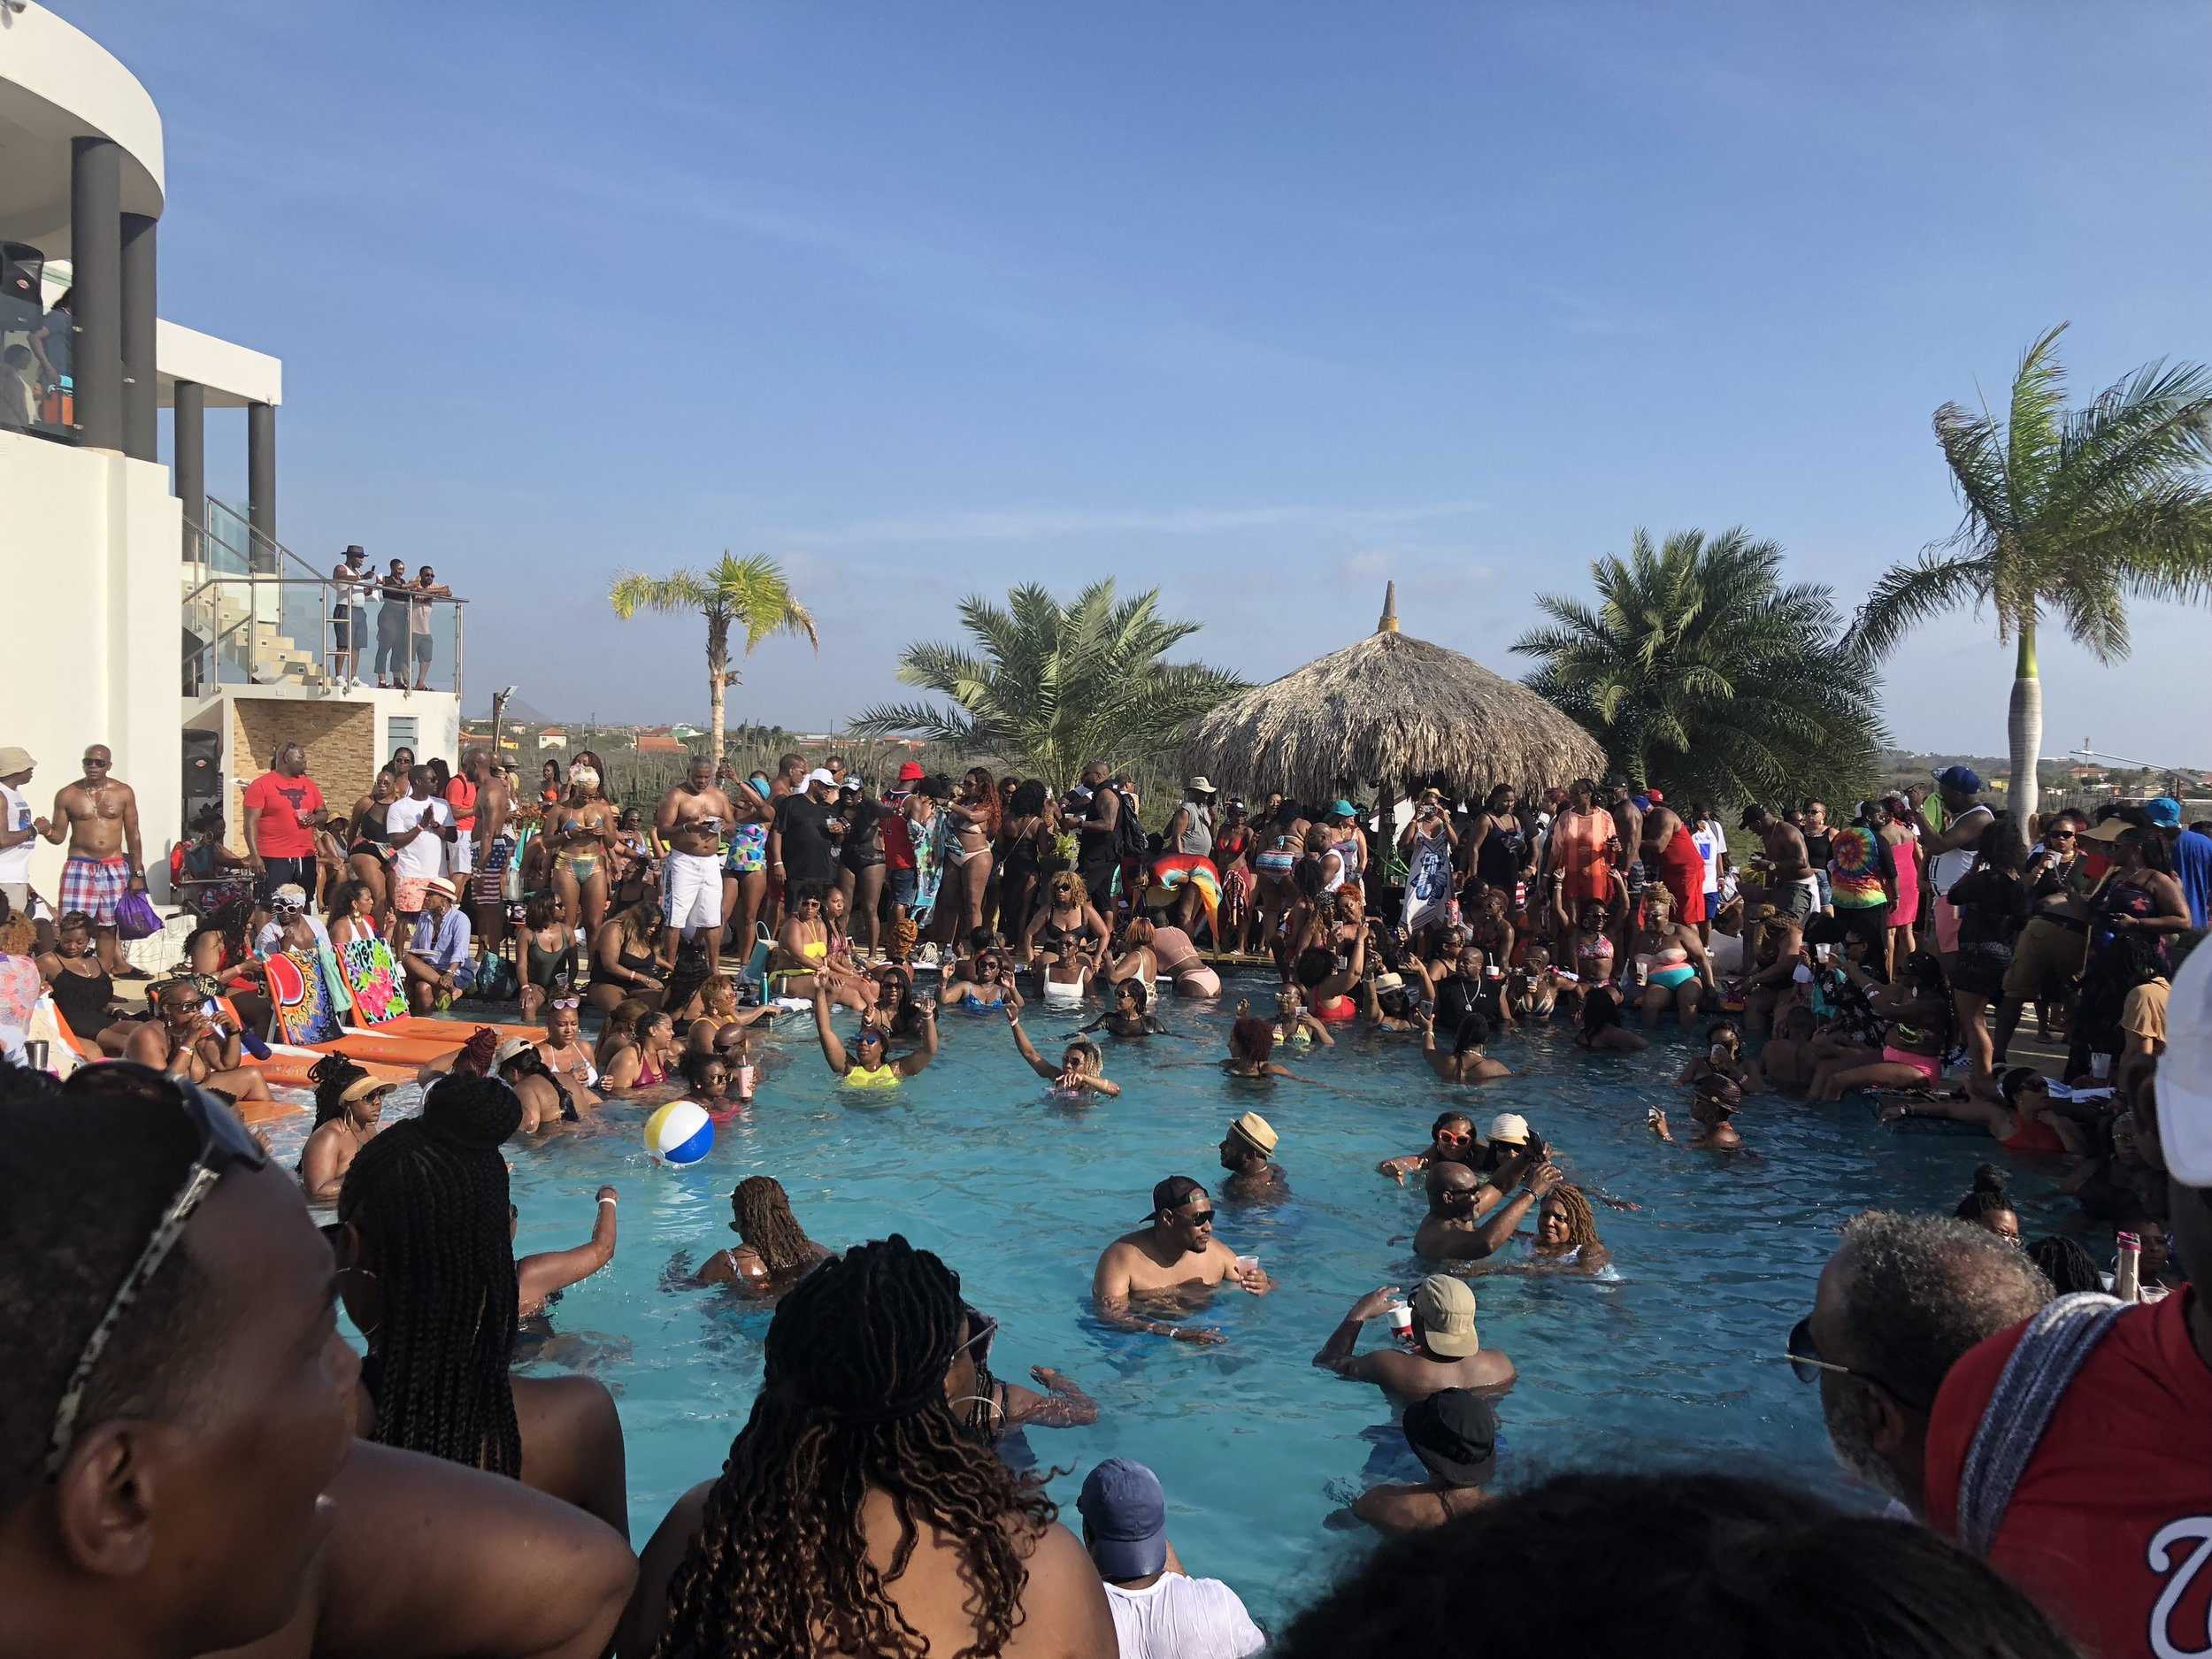 Mansion Party hosted by one of the Aruba social groups.